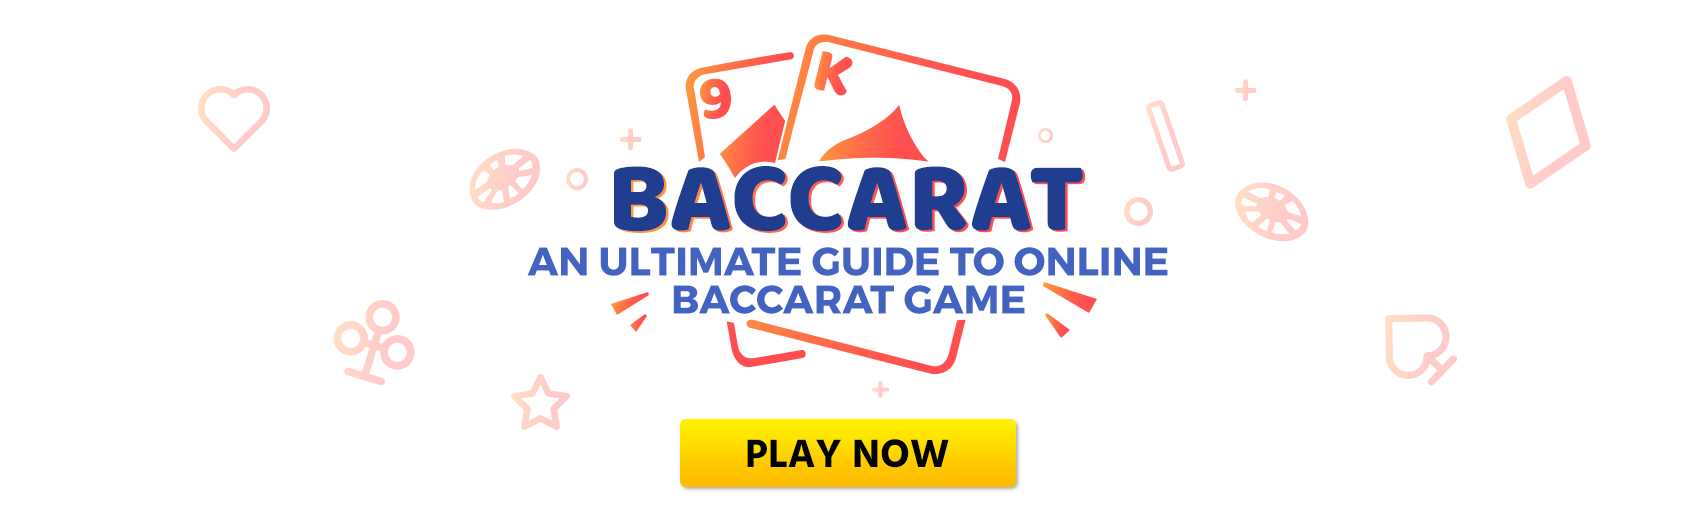 An Ultimate Guide to Play Online Baccarat Game